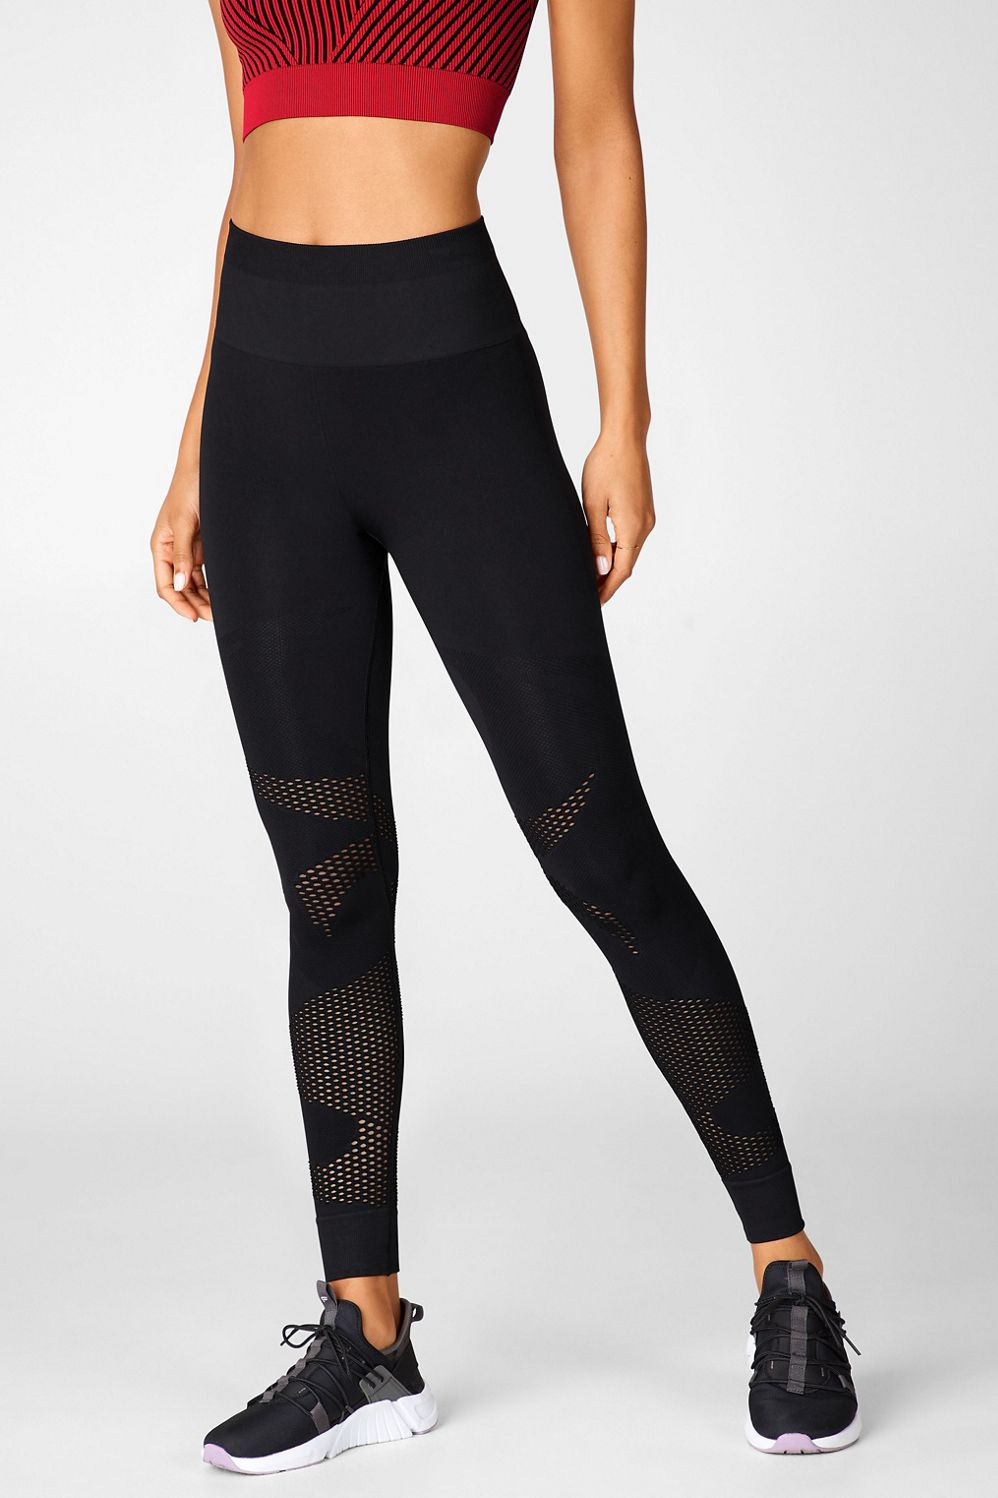 Fabletics High-Waisted Seamless Mesh Legging